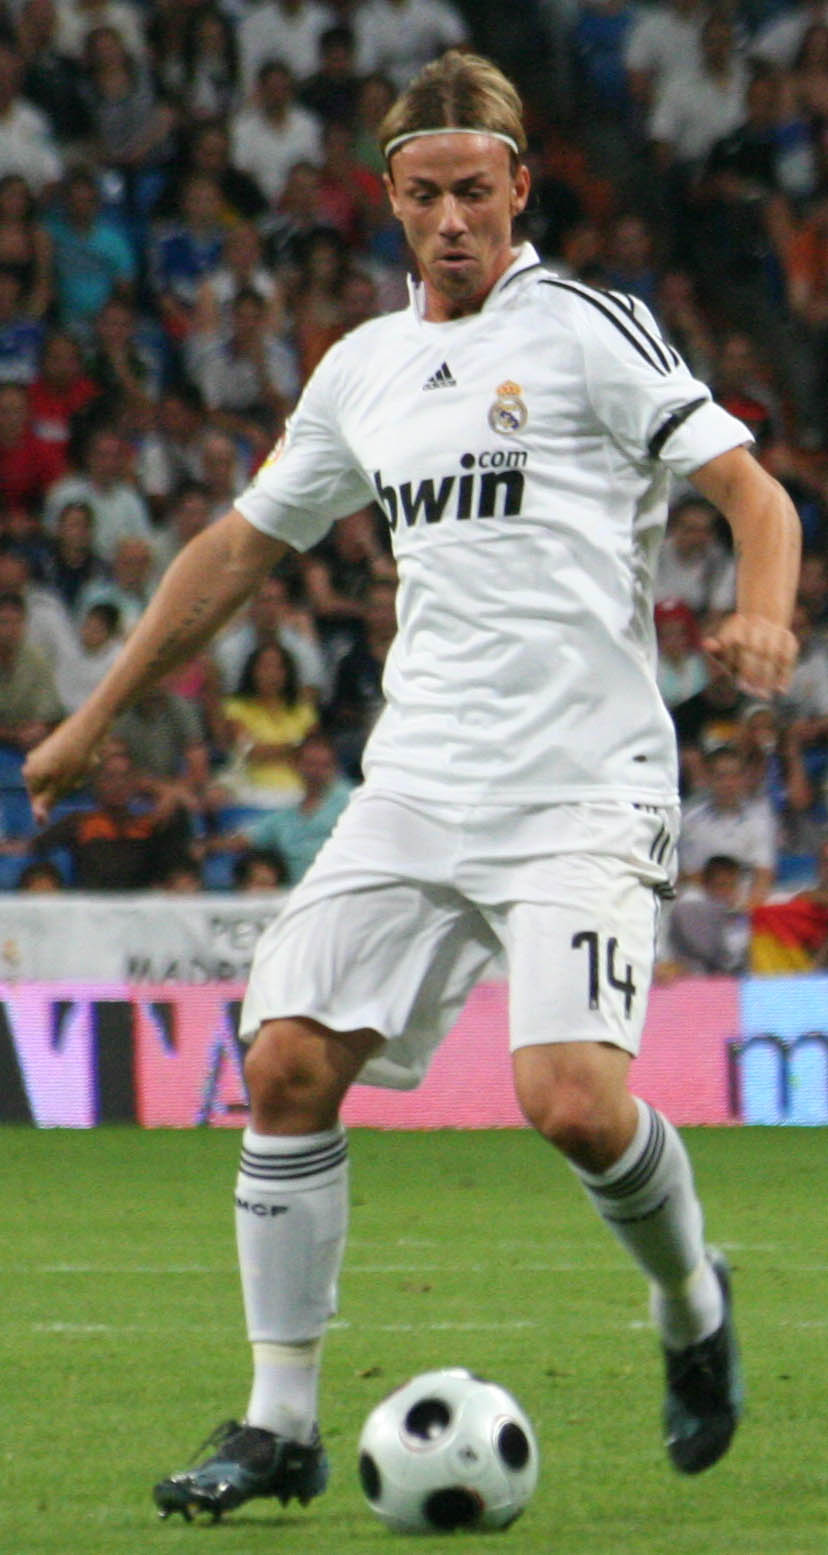 Guti in action for [[Real Madrid CF|Real Madrid]] in 2008